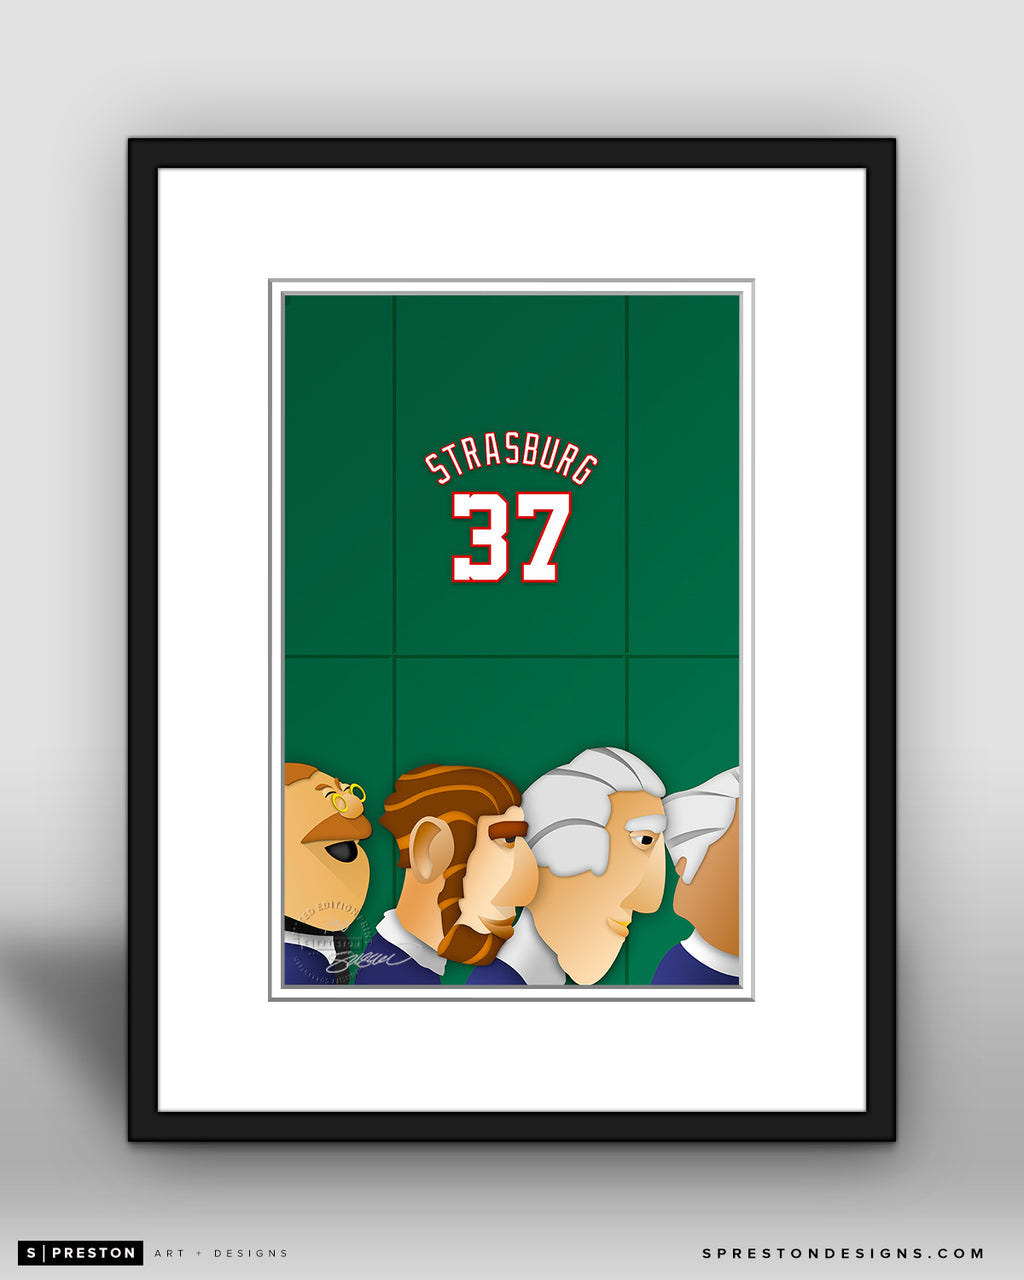 Minimalist Nationals Park - Player Series - Stephen Strasburg - Washington Nationals - S. Preston